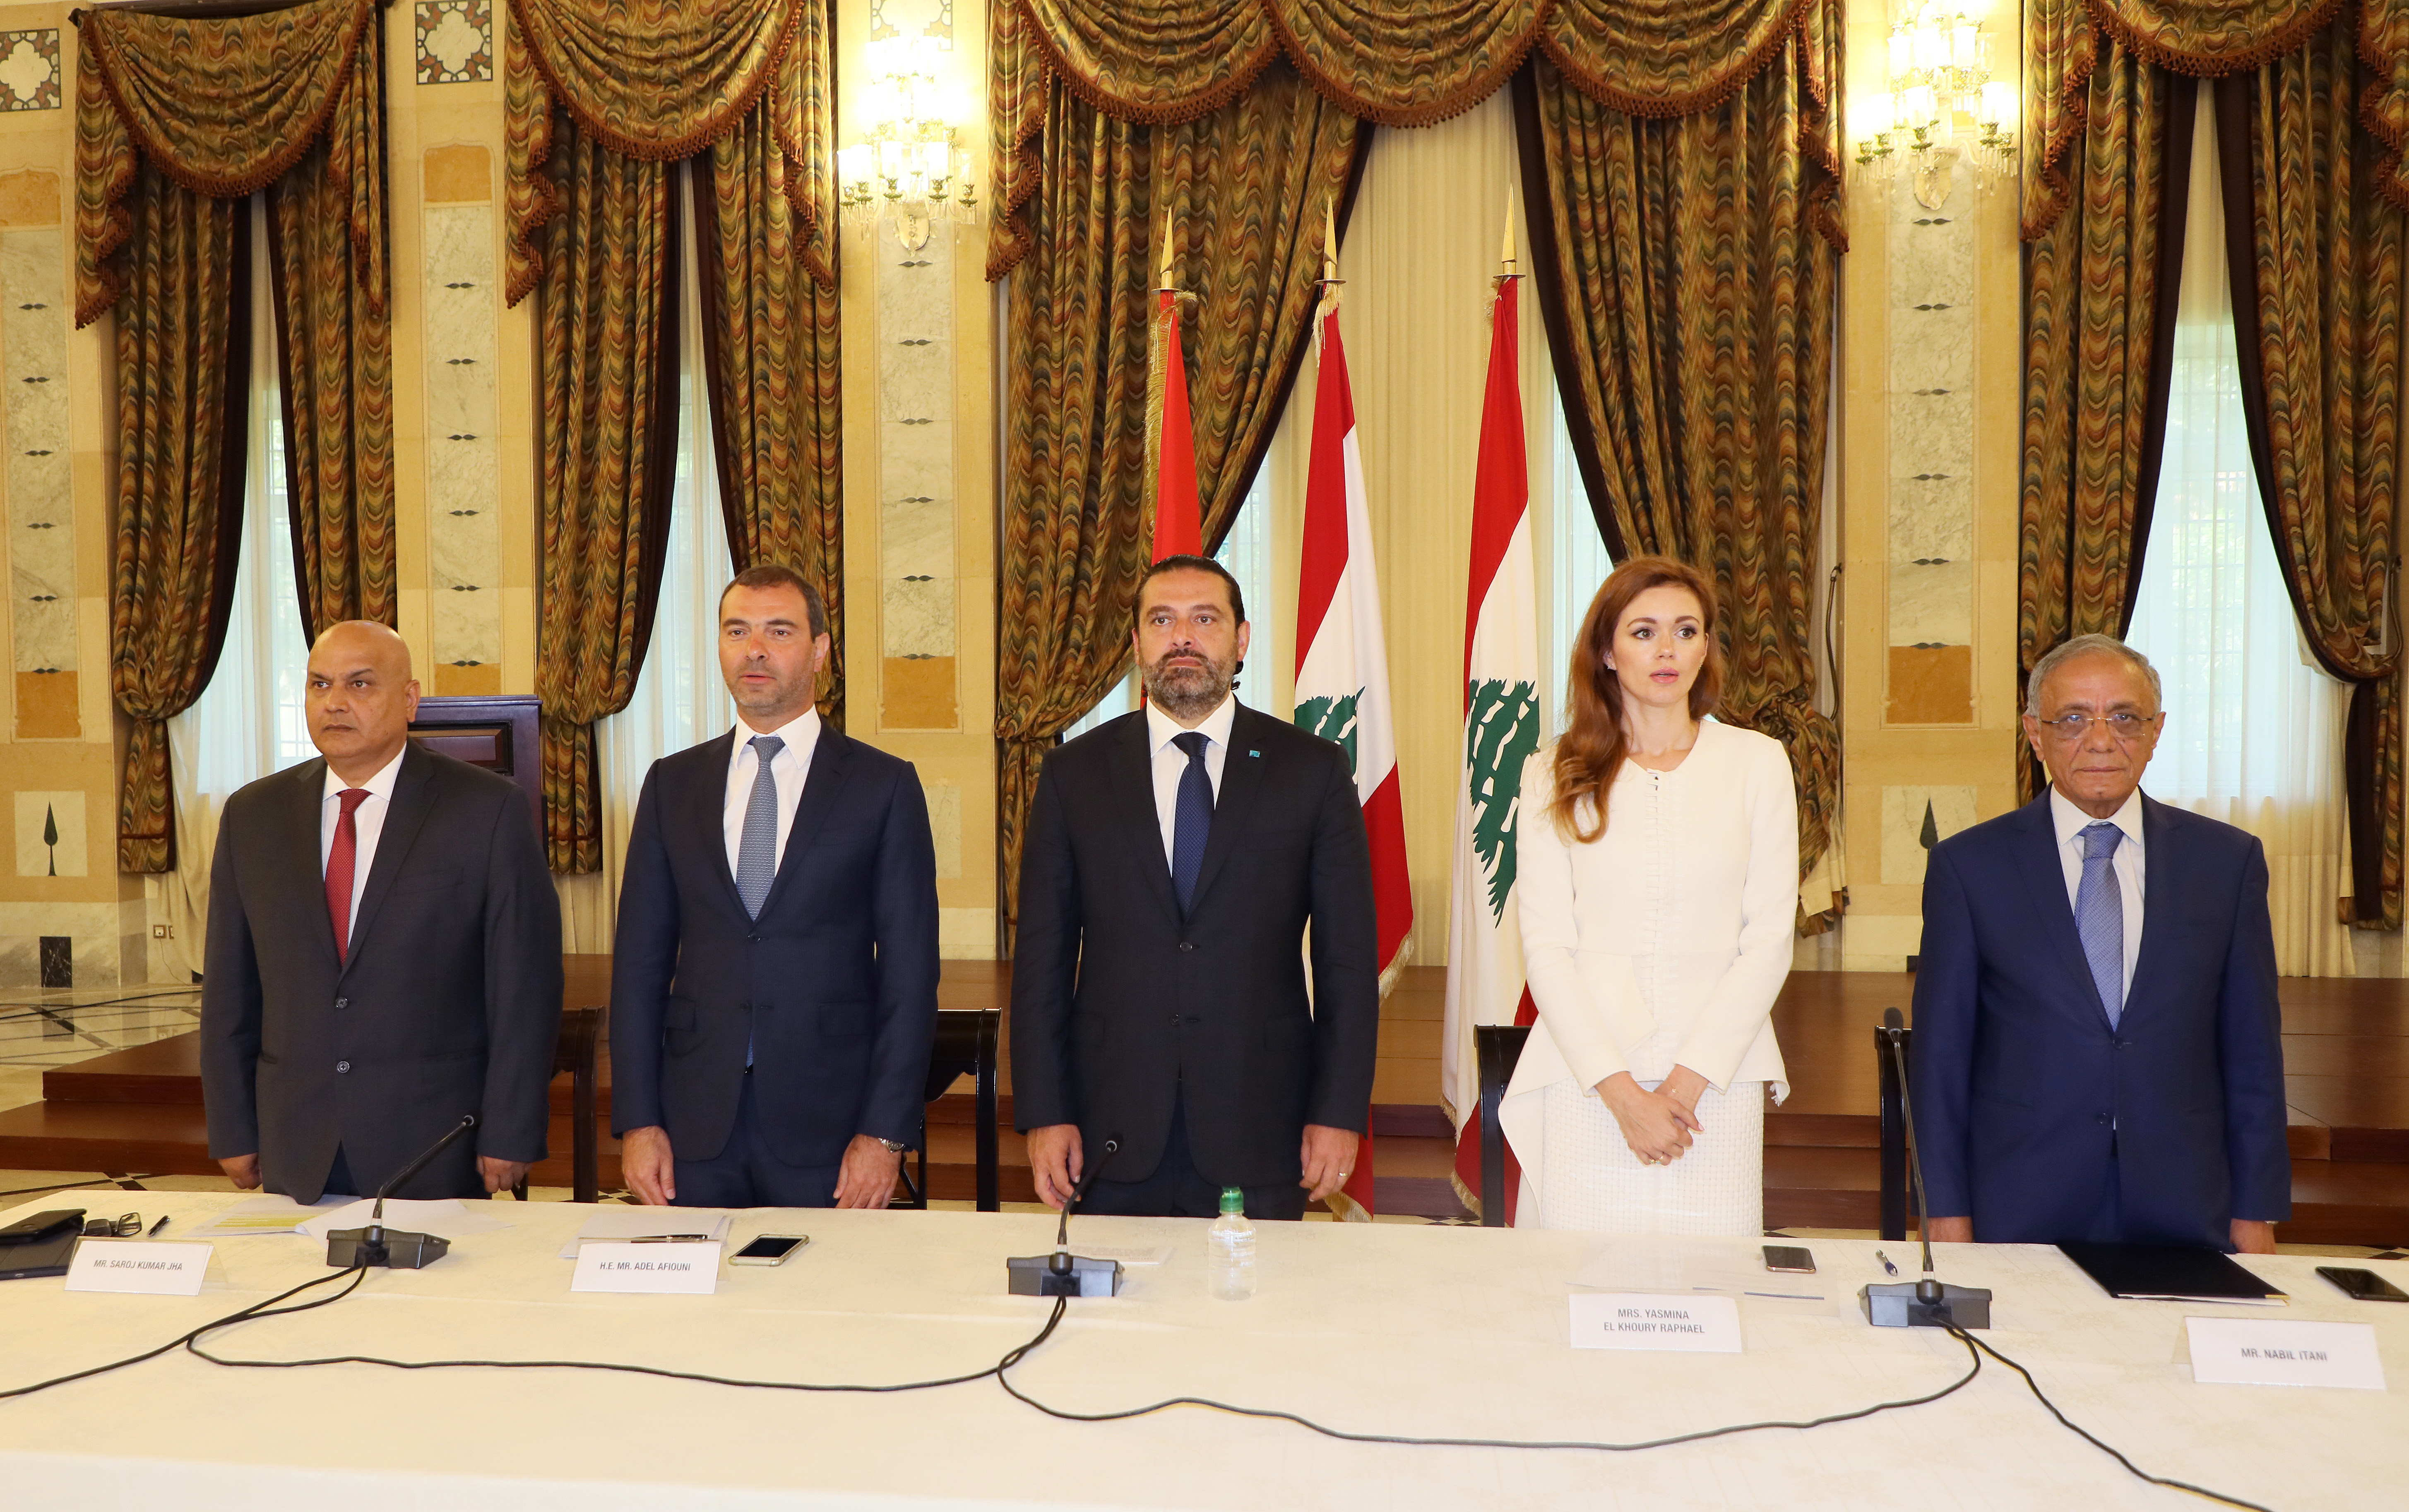 Pr Minister Saad Hariri Attends a Conference for Ecomerce at the Grand Serail 2